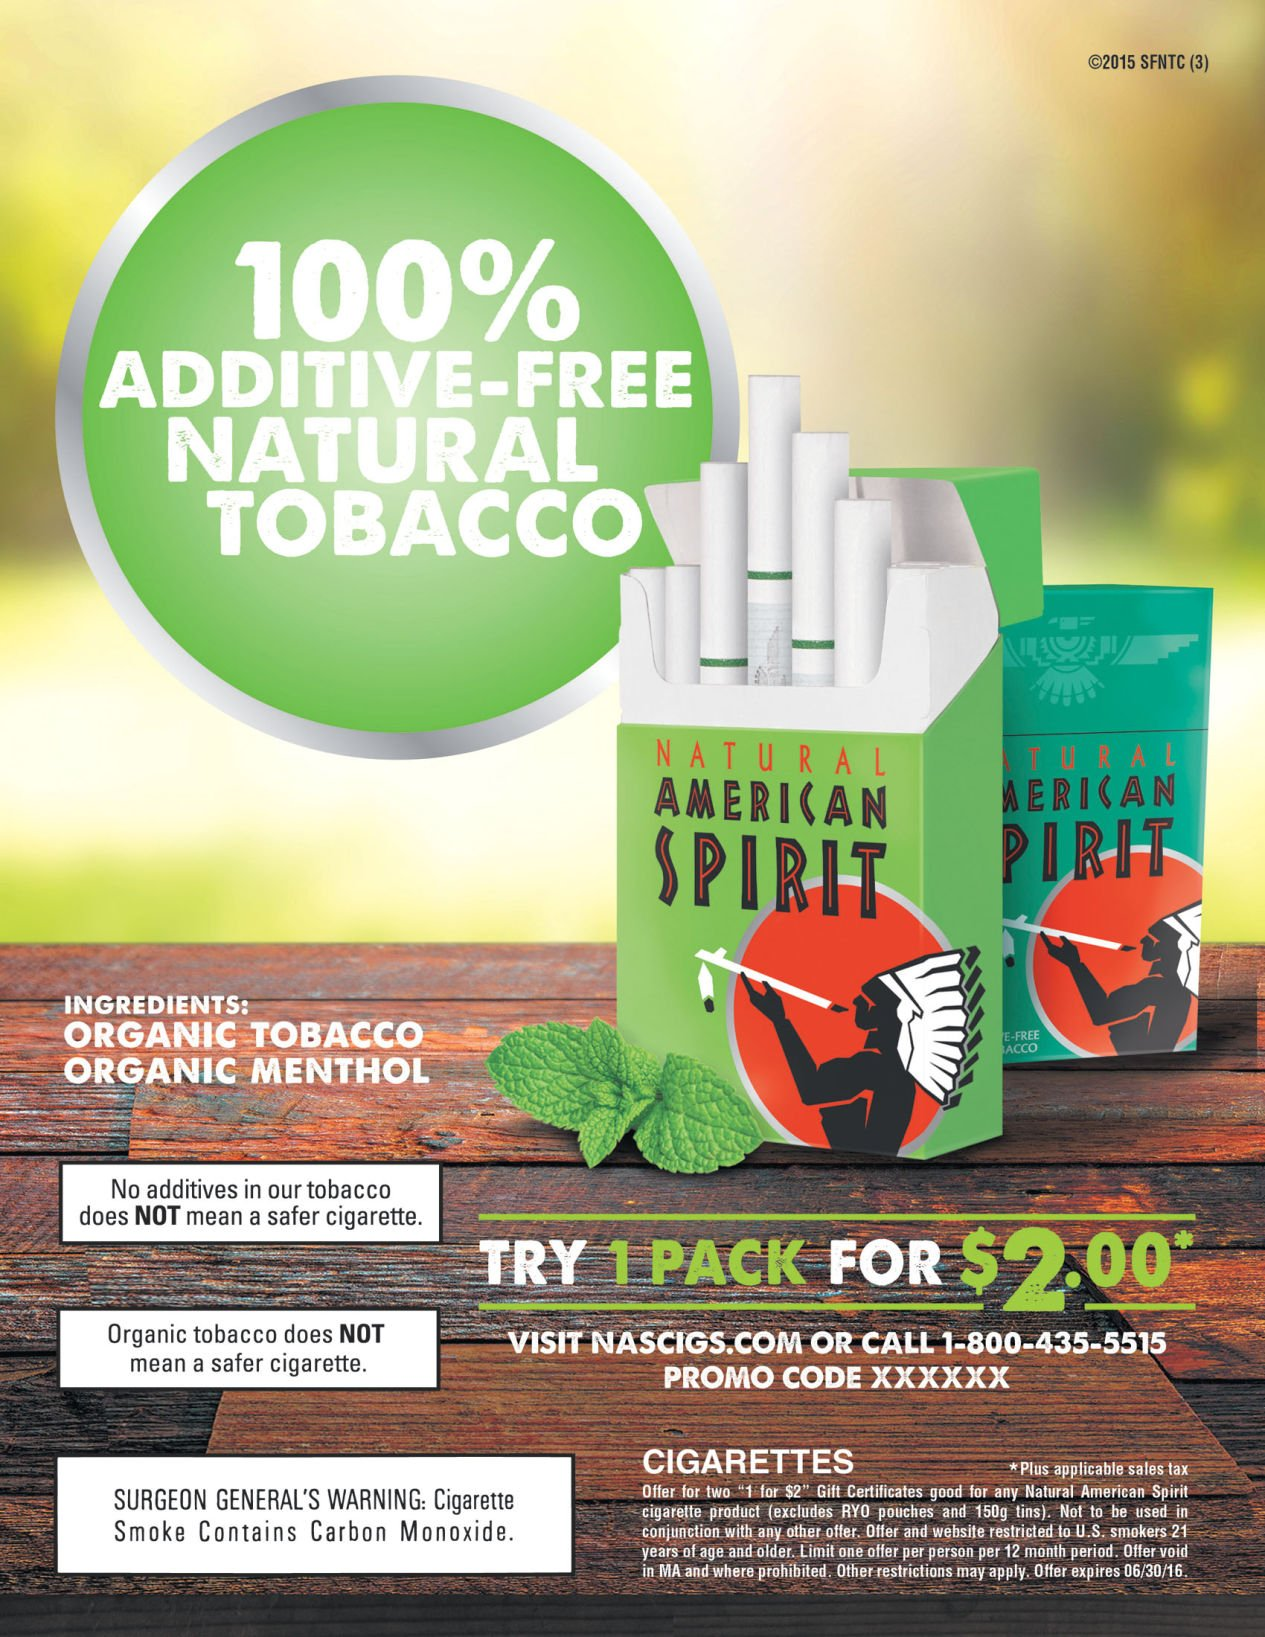 How much is Marlboro menthol cigarettes